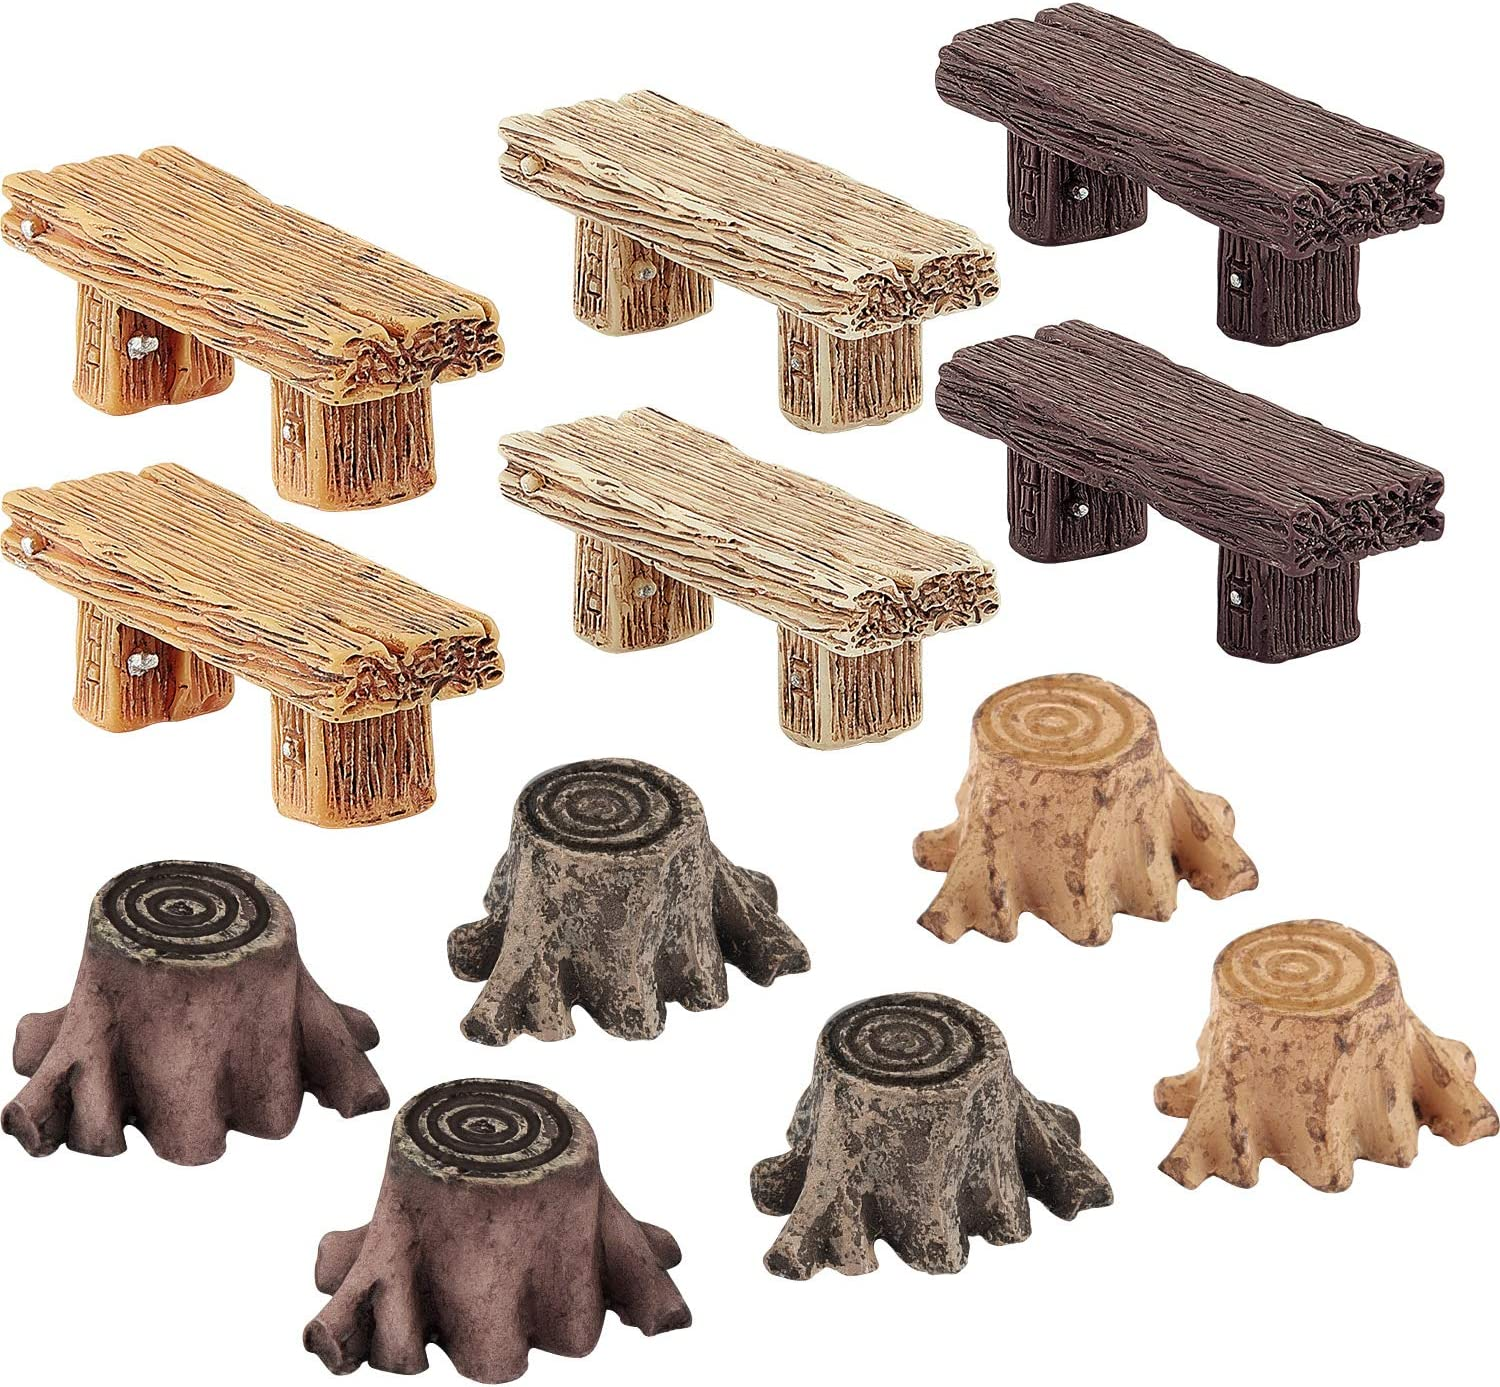 12 Pieces Miniature Fairy Garden Ornaments, Includes 6 Pieces Retro Wooden Style Benches, 6 Pieces Artificial Mini Root Stump for Moss Terrariums Landscape Dollhouse Accessories Decorations